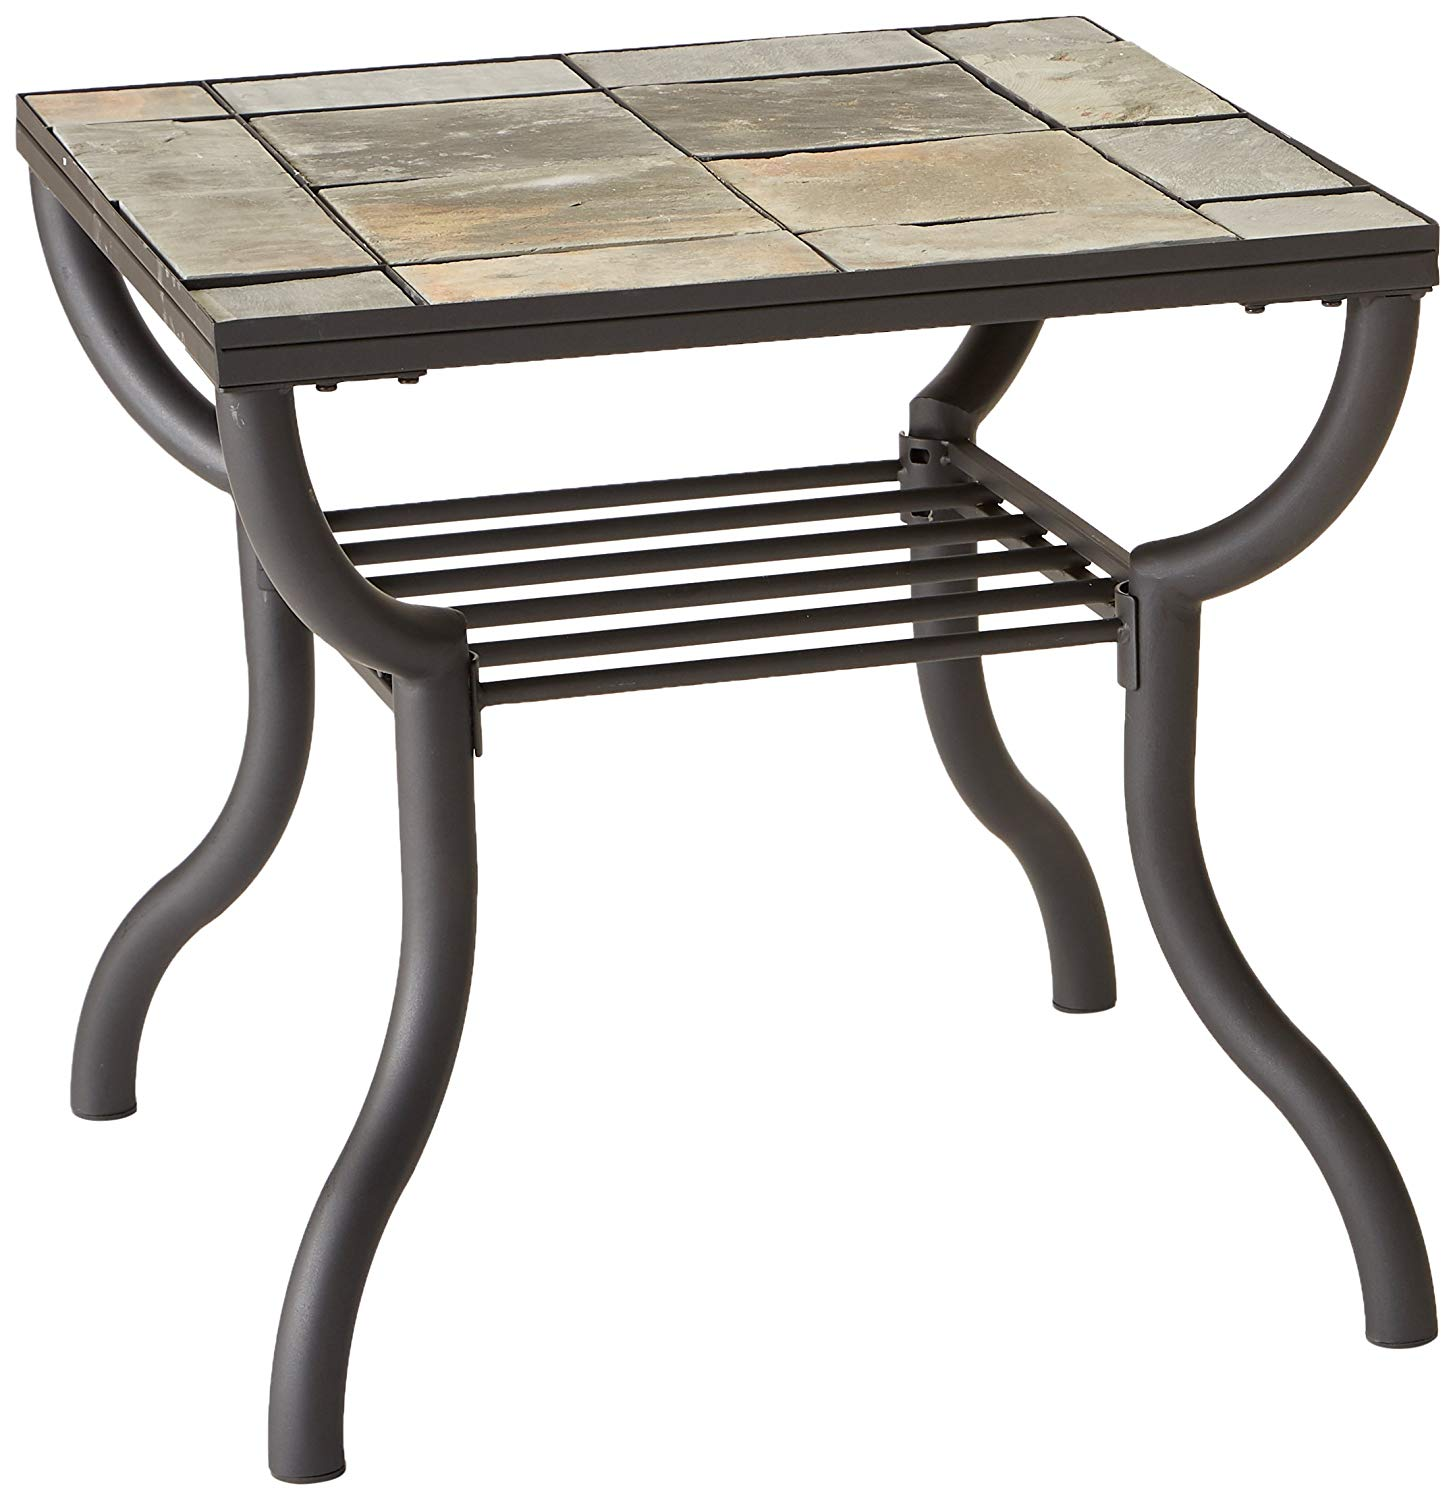 signature design ashley contemporary slated square living room slate end table home kitchen rustic shabby chic coffee solid marble dolphins bbq set ethan allen curio cabinet